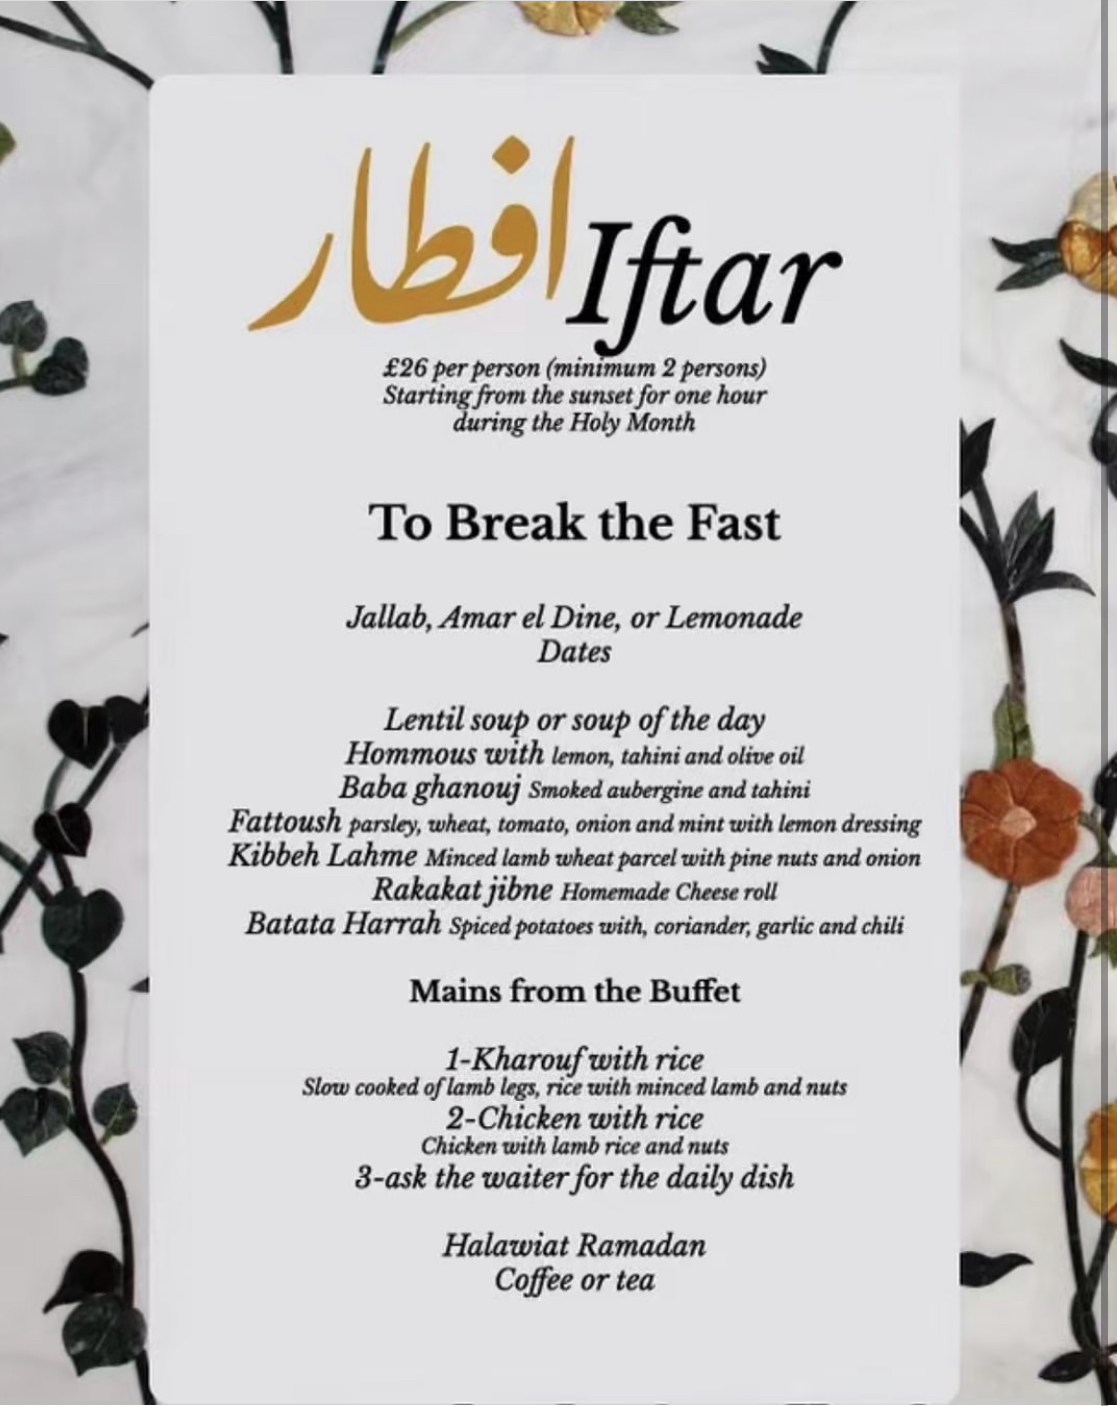 Where to have Iftar in London this Ramadan (2019 Edition)